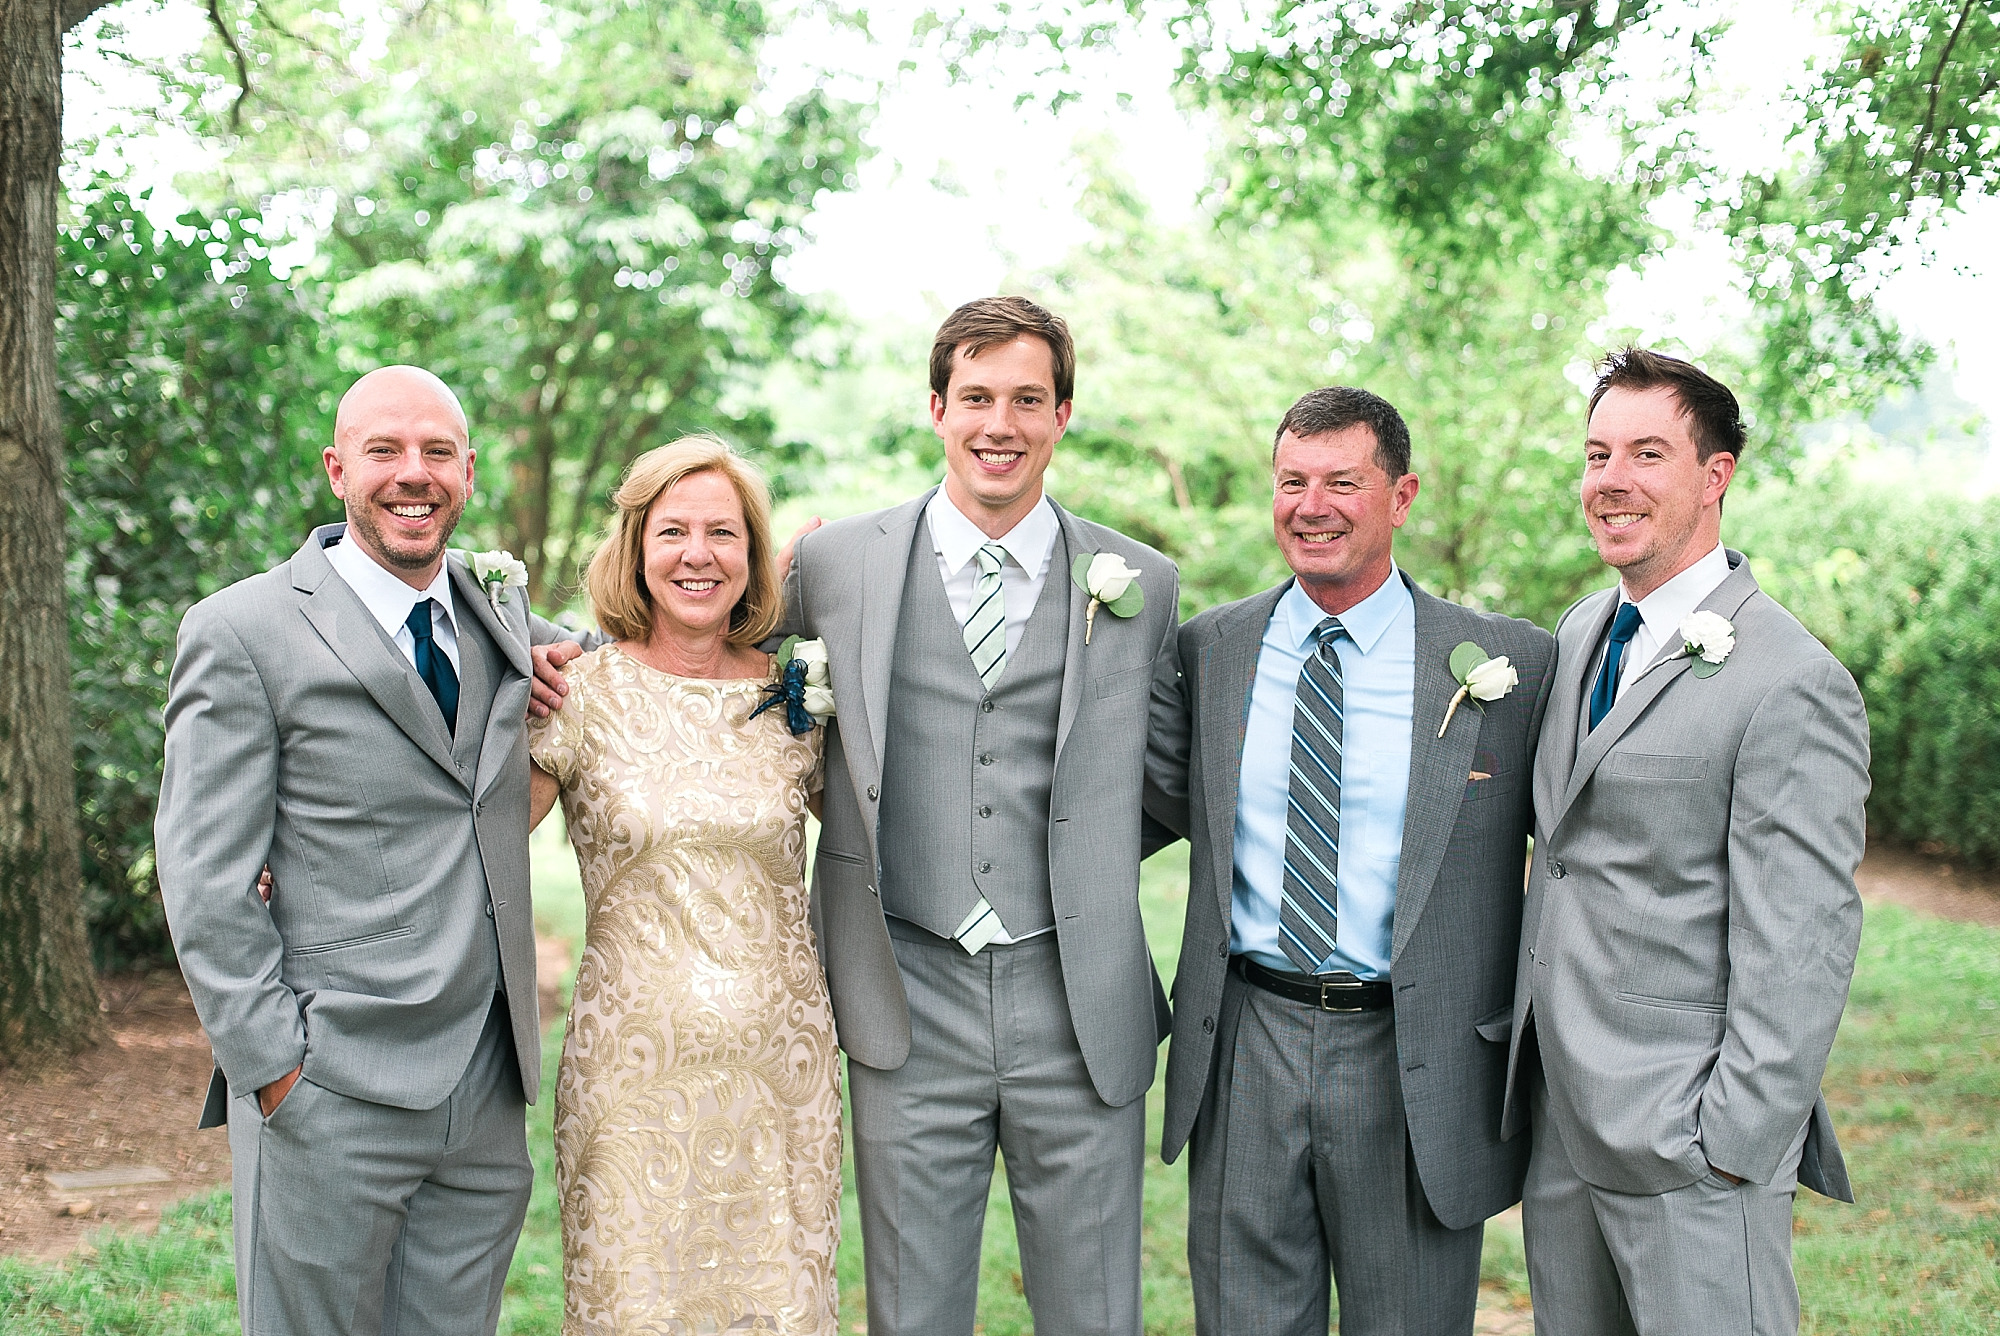 Loved working with Wes and his family!